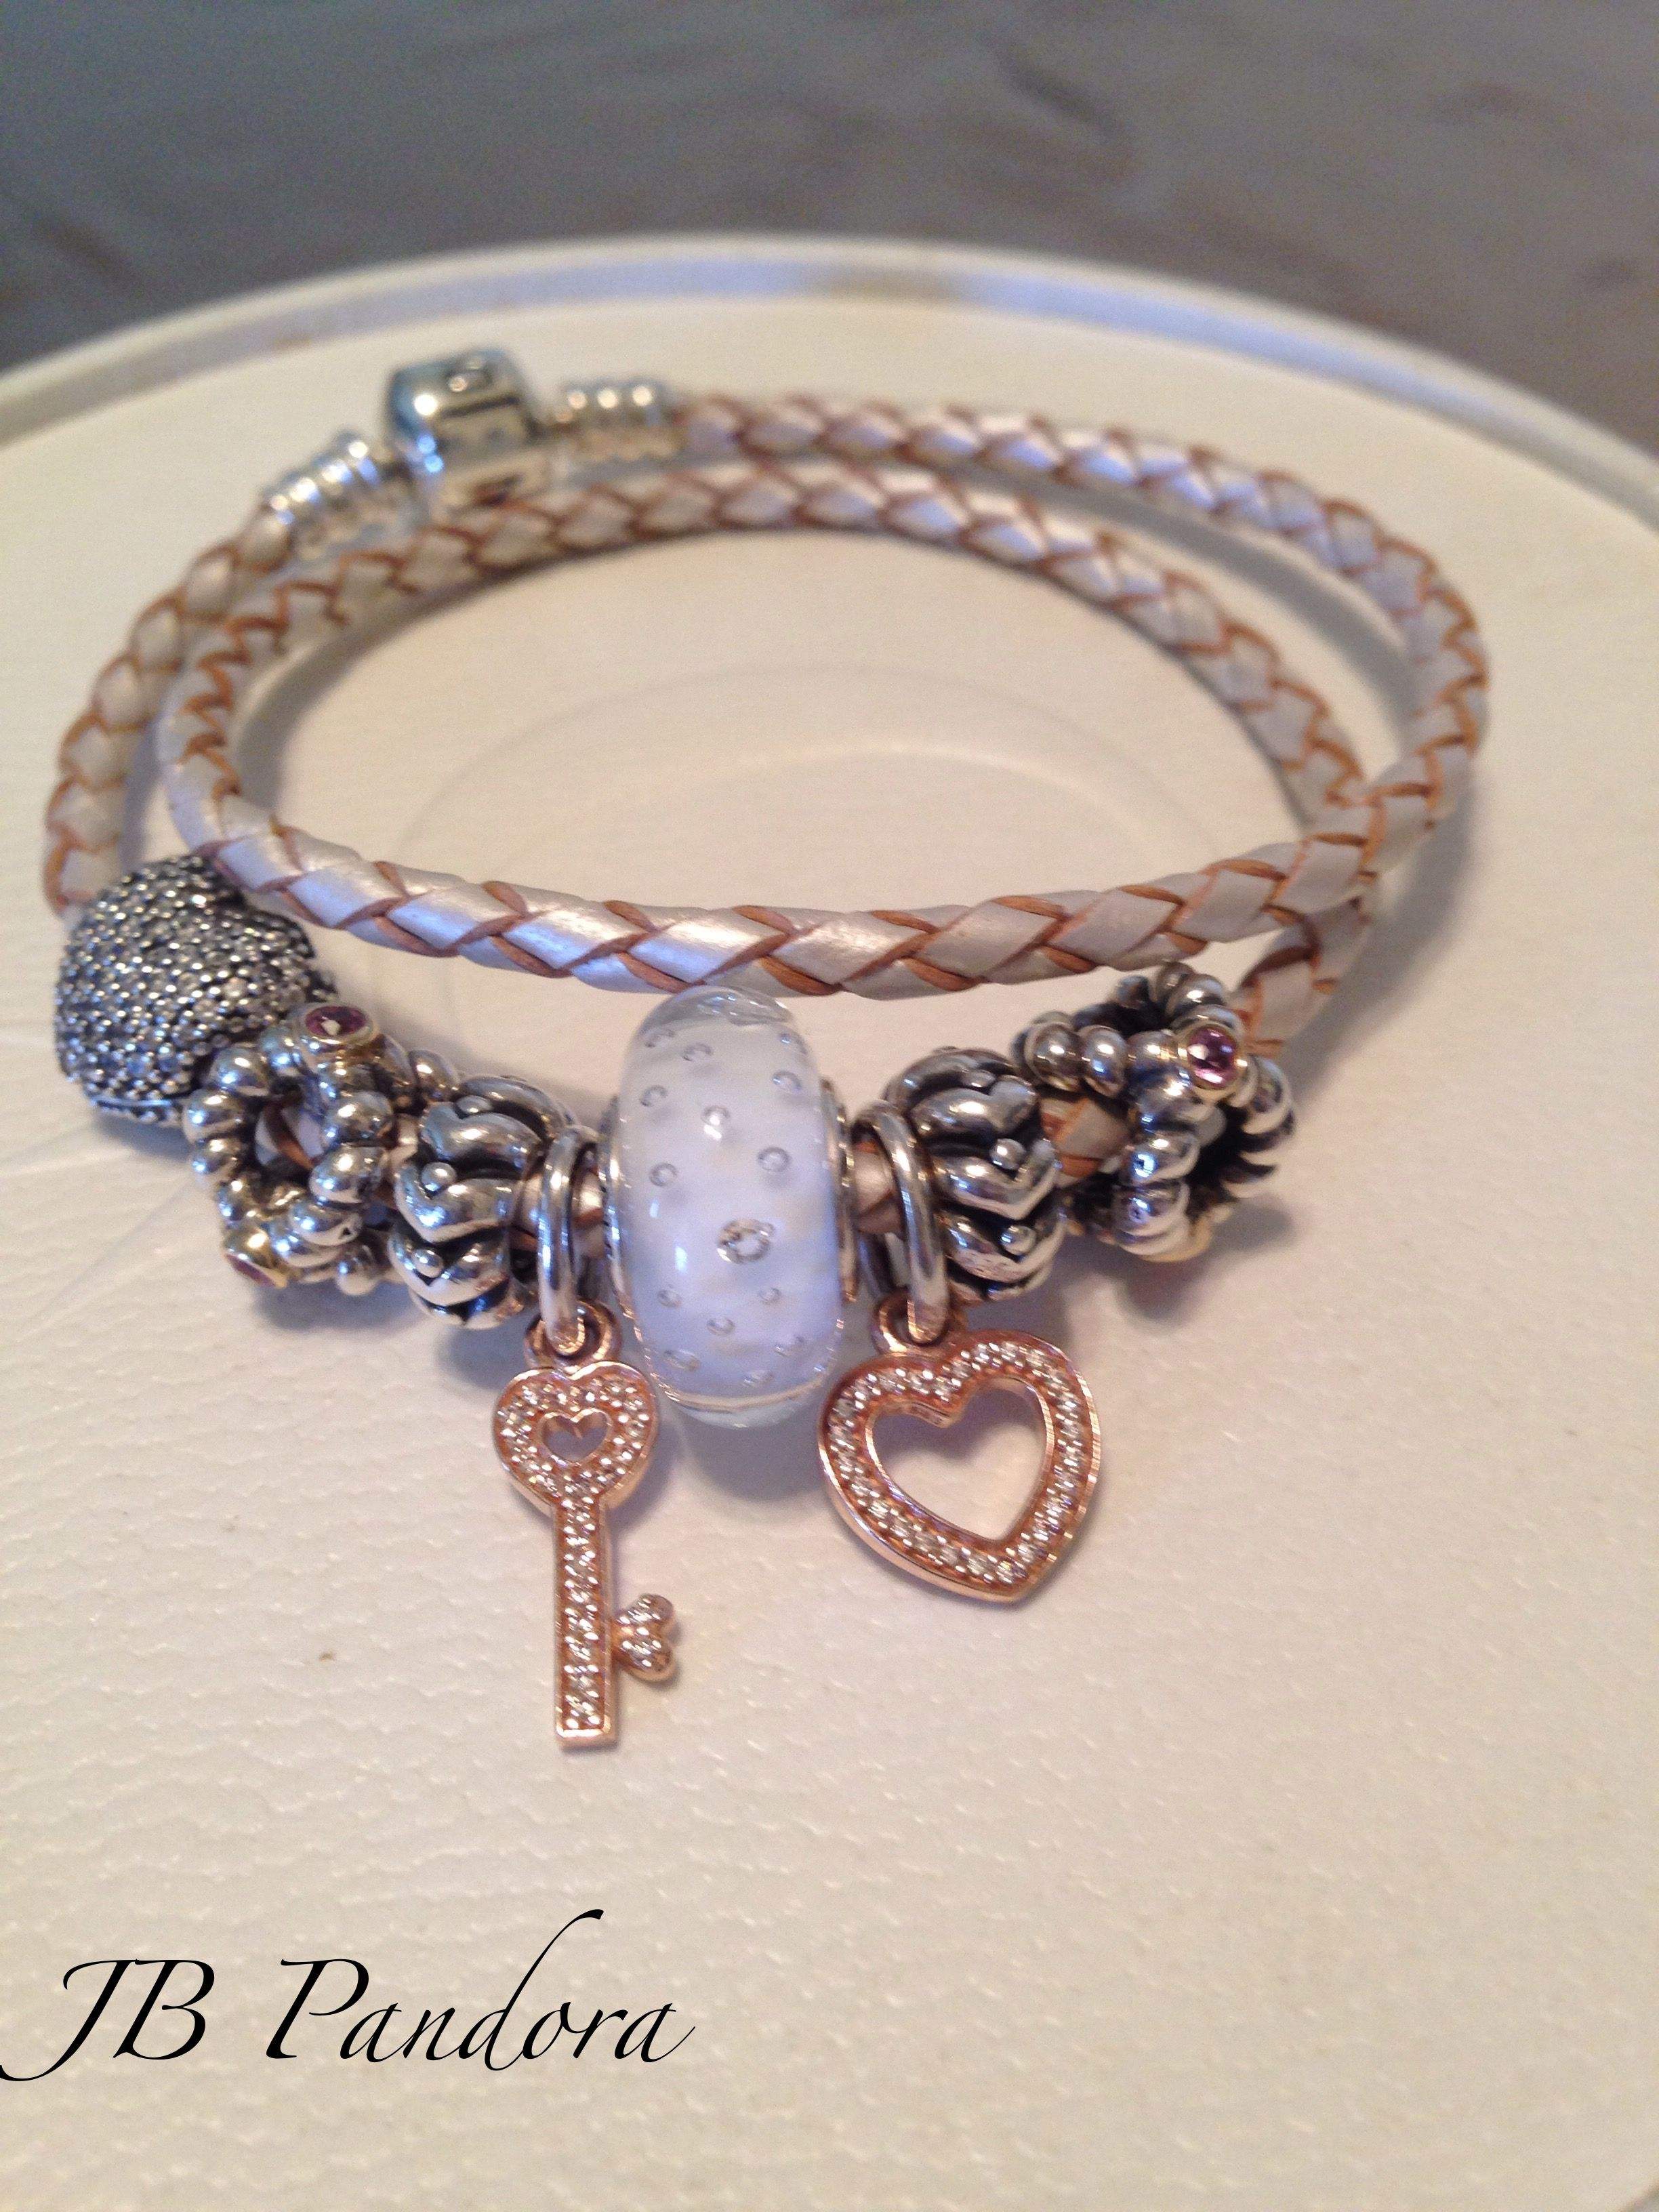 Pandora Champagne Leather Bracelet 14kt Rose Love And Trust Symbols White Effervescent Murano Ready For Spring 4 12 15